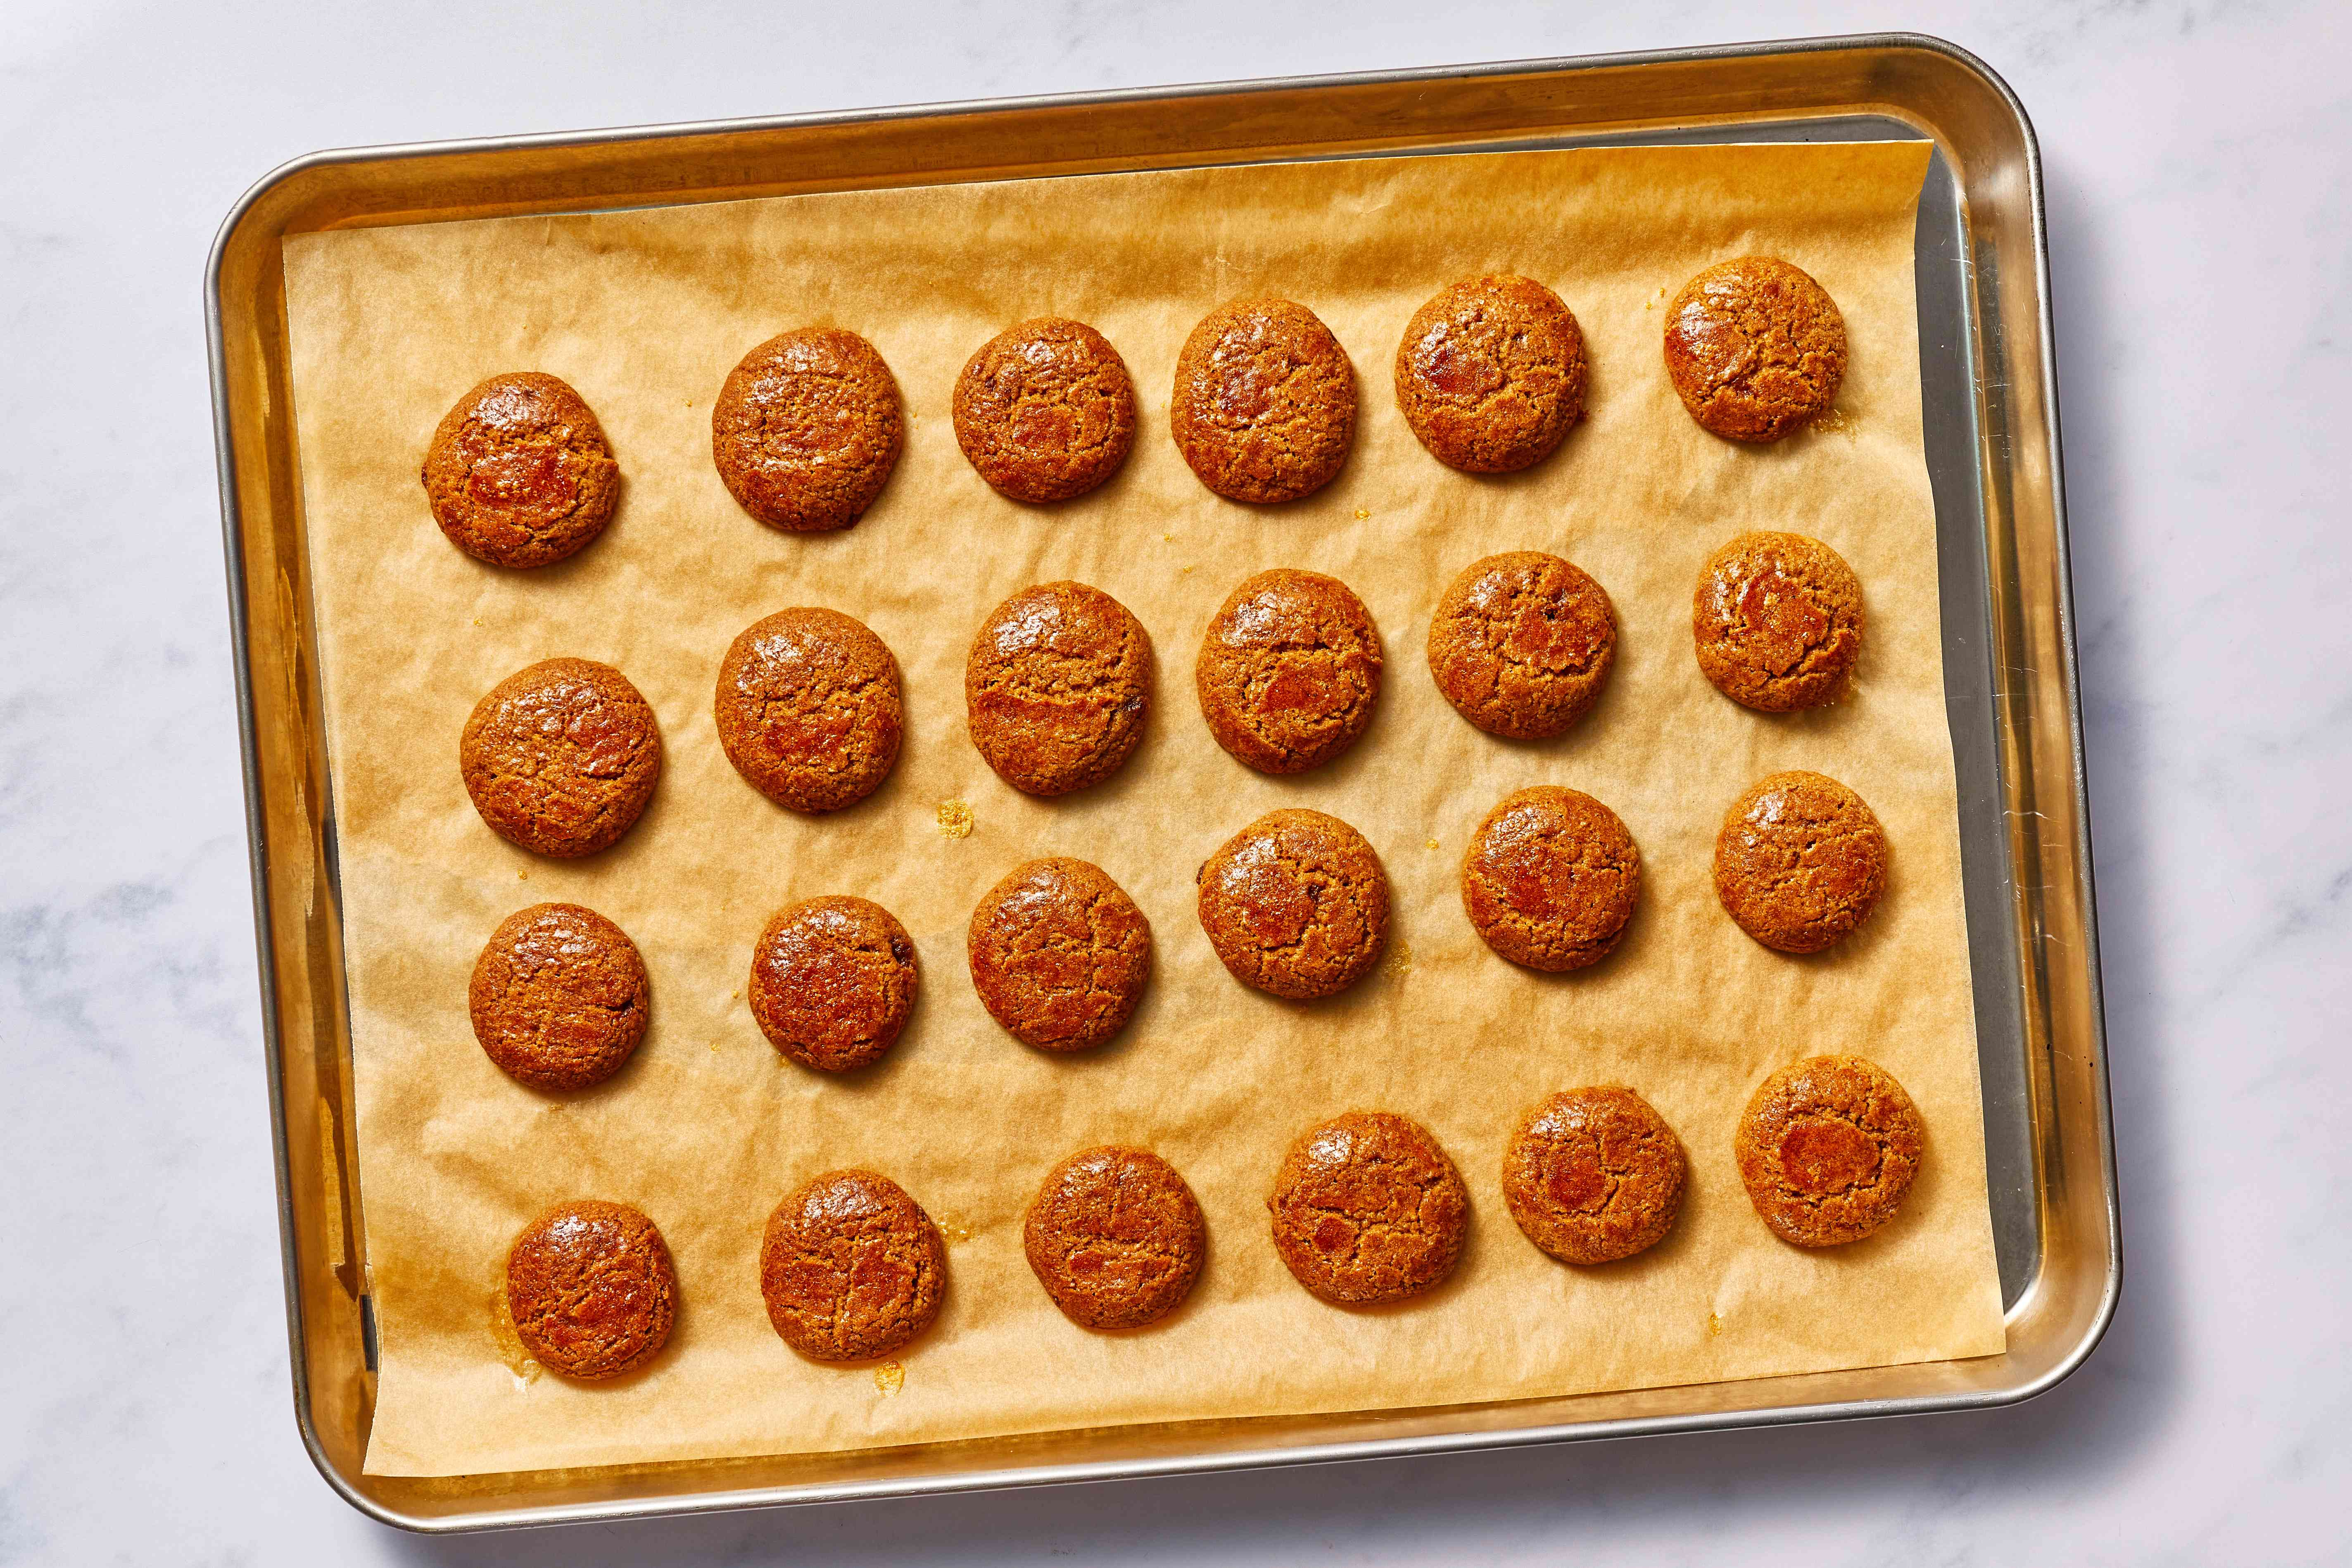 Traditional Kruidnoten Cookies—Dutch Ginger Nuts on a baking sheet